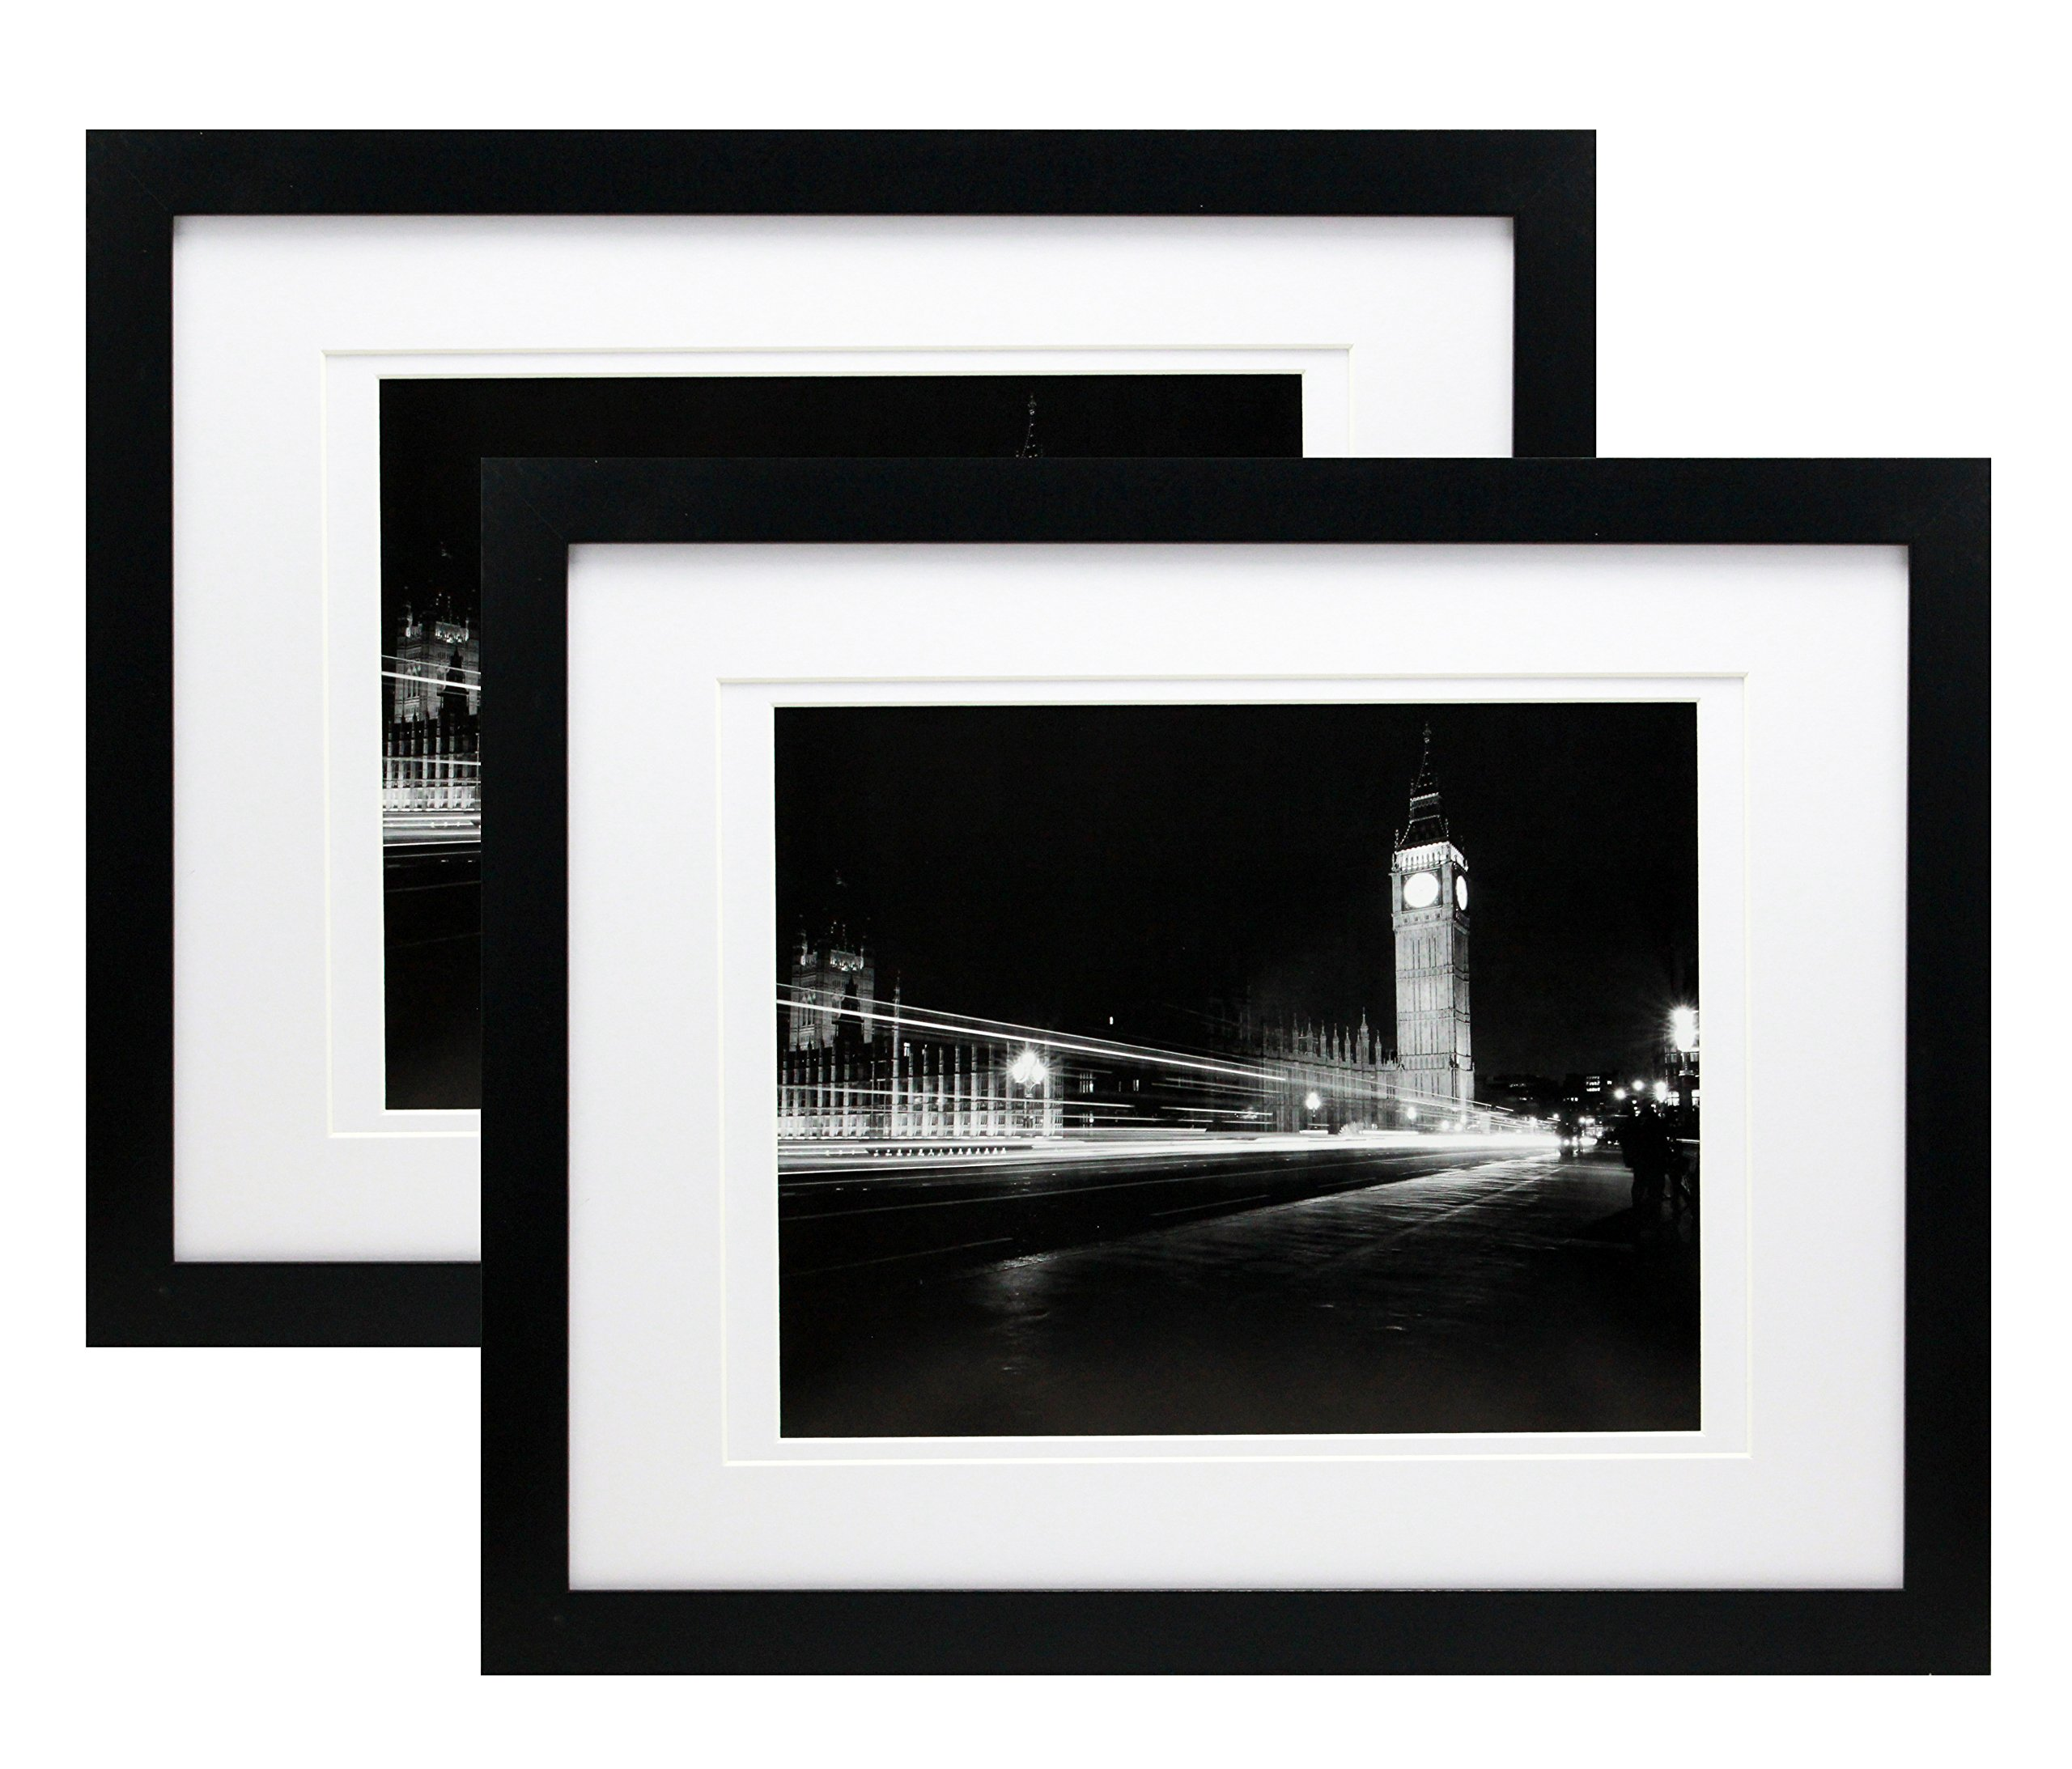 11x14 Black Gallery Picture Frame with 8x10 and 8.5x11 Mat - Two Frames - Wide Molding - Includes Both Attached Hanging Hardware and Desktop Easel - Display Pictures Documents Certificates (2-Pack) by Smashed Banana